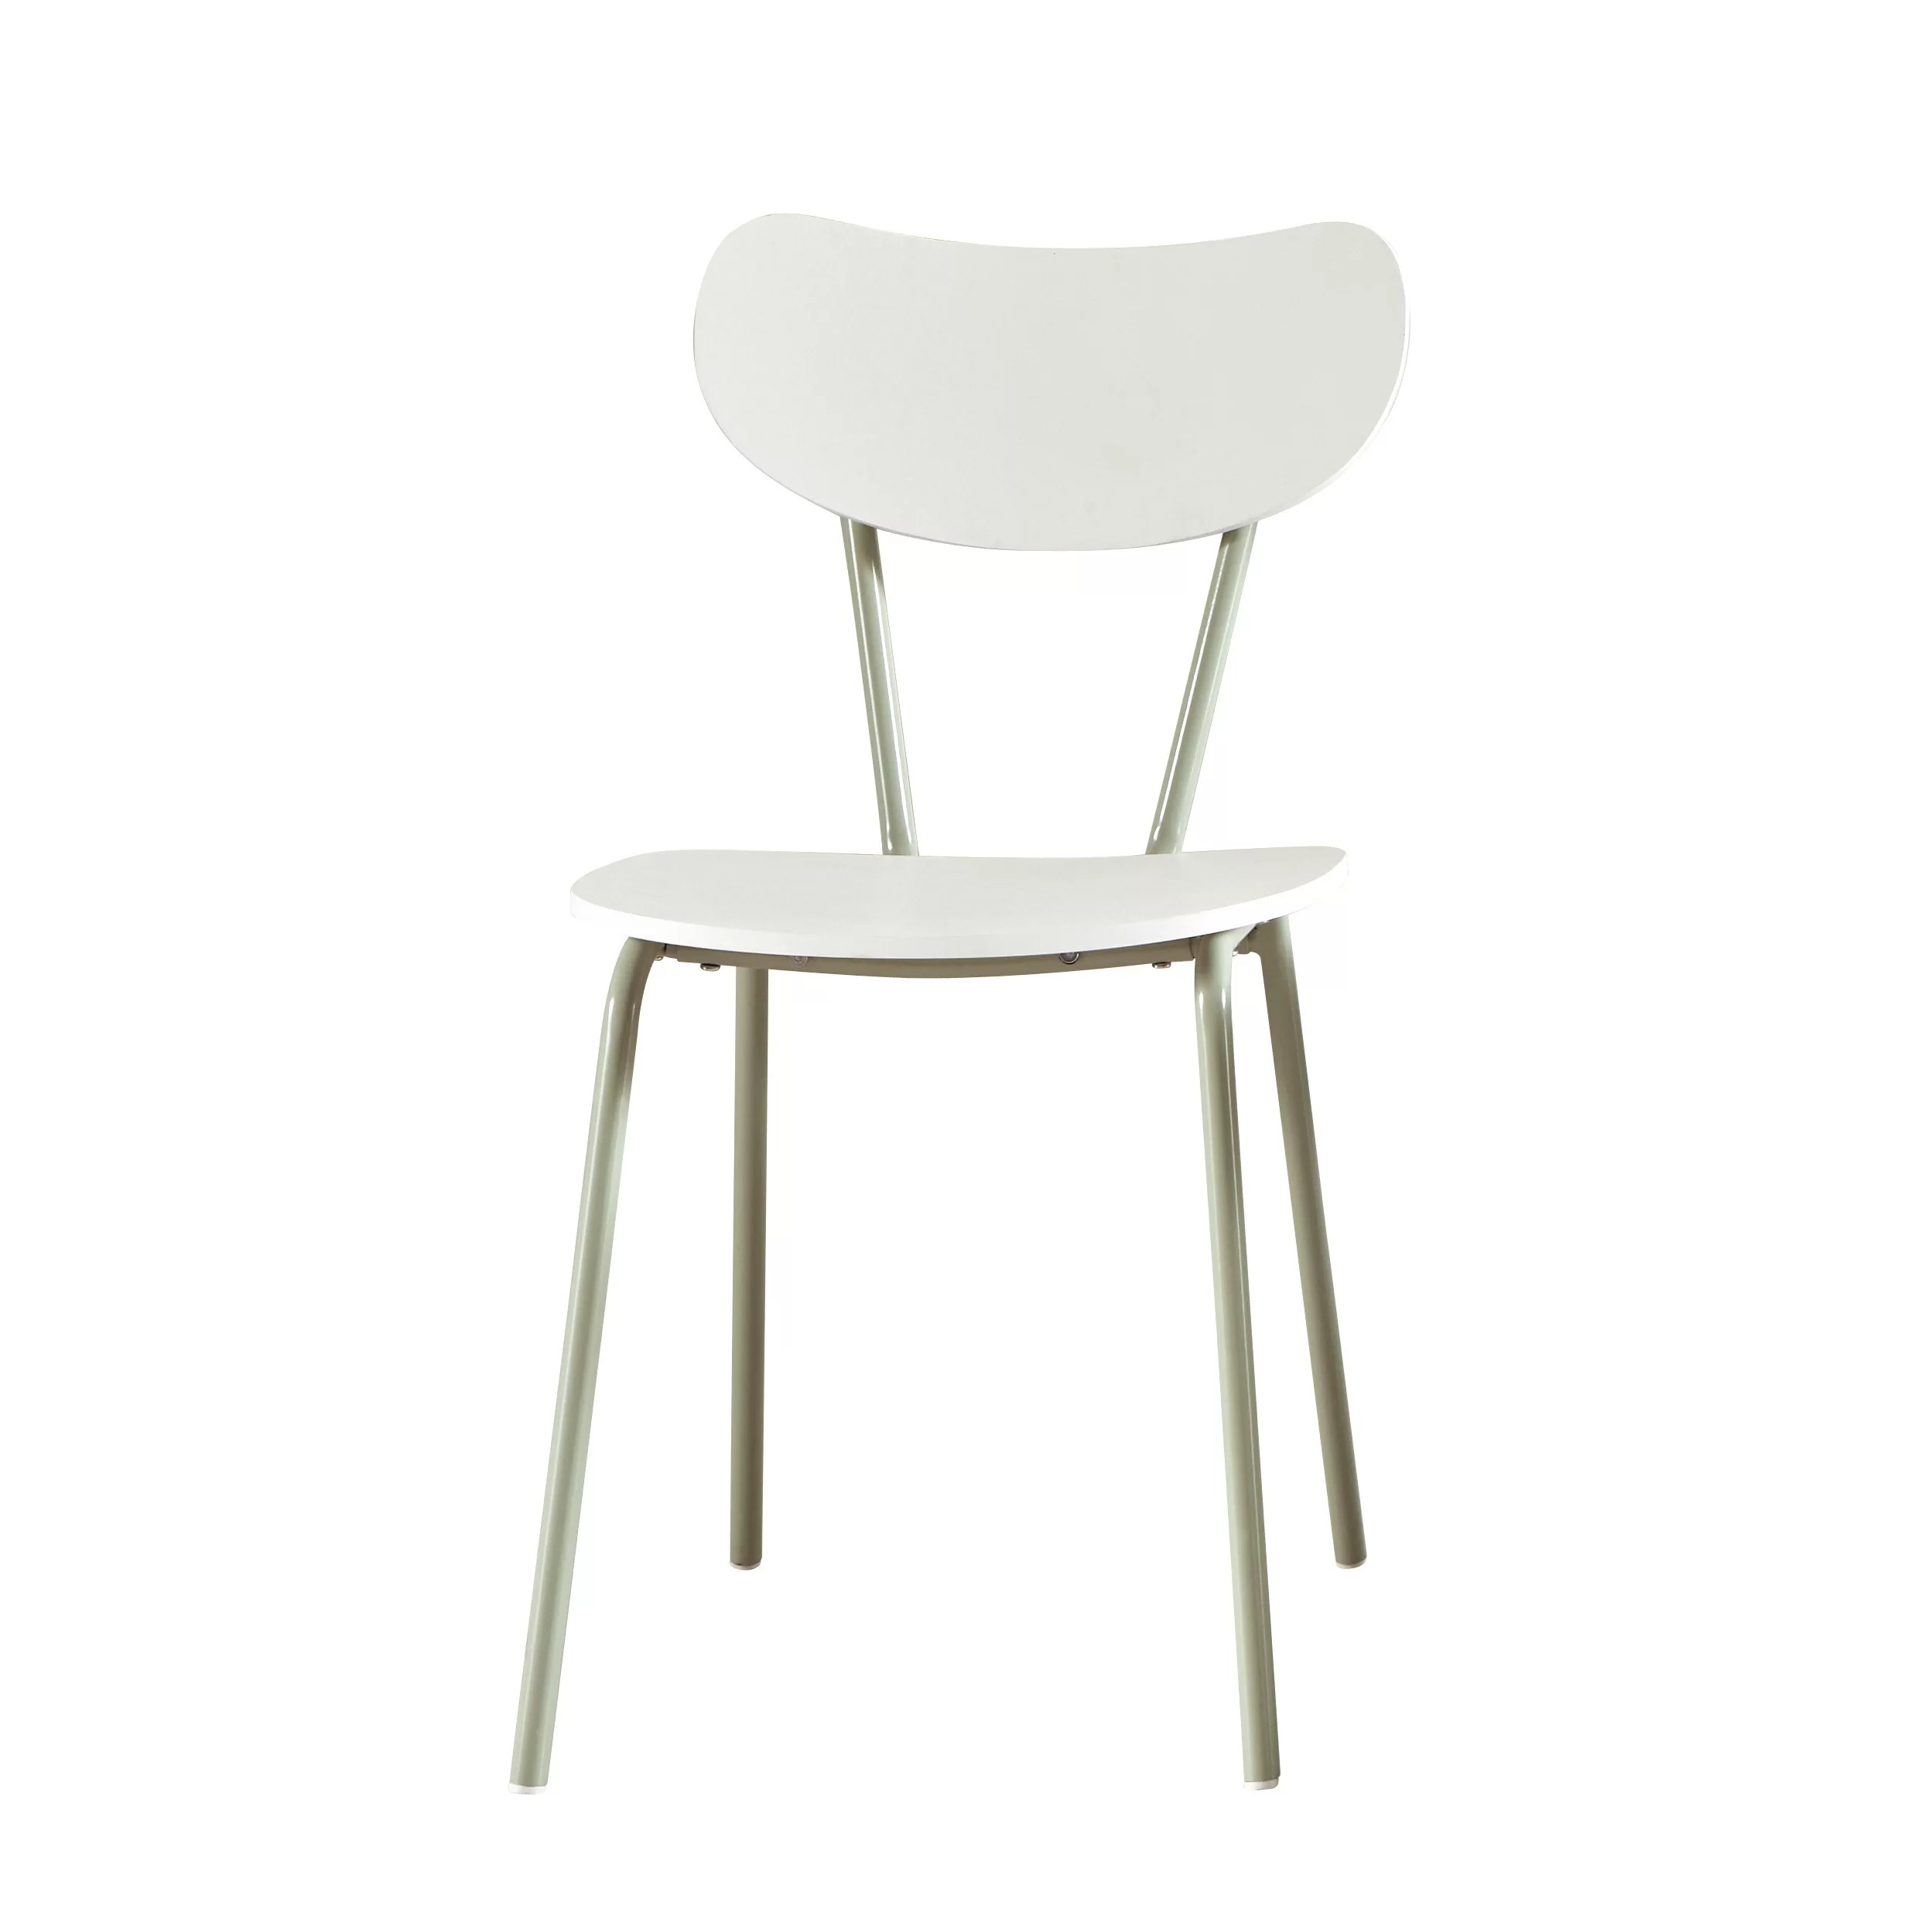 Wayfair Dining Chairs Wayfair Basics Dining Chair And Reviews Wayfair Uk